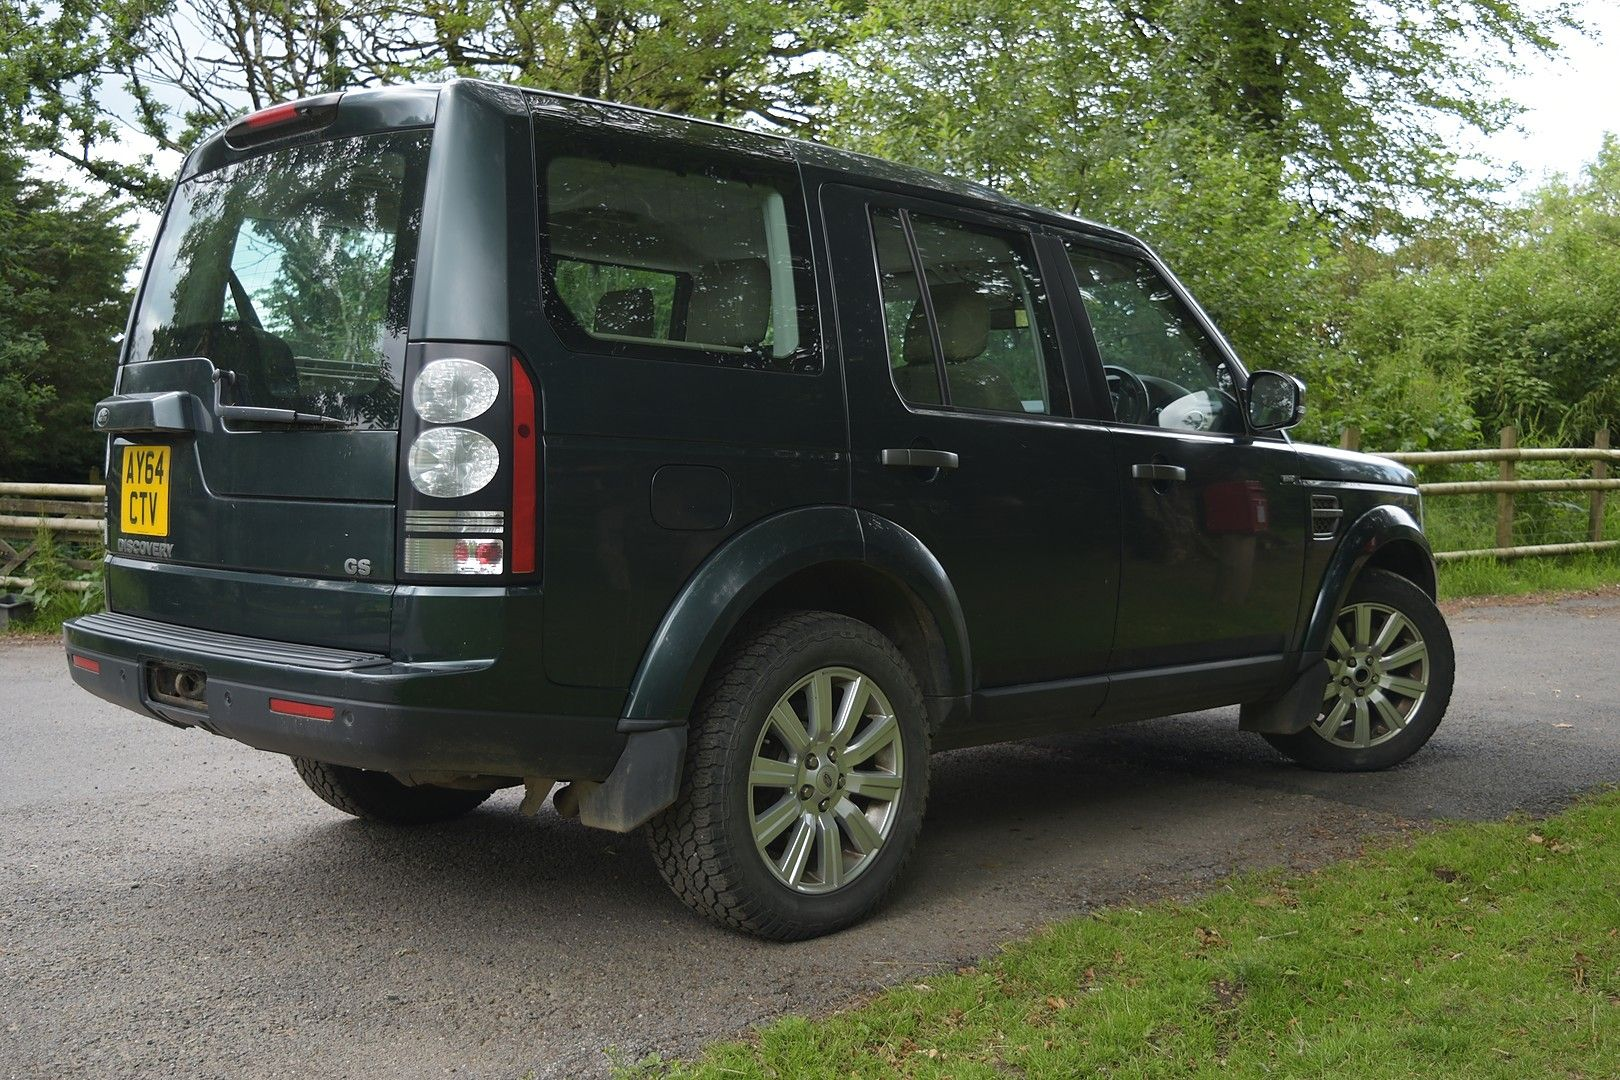 LAND ROVER Discovery 3.0 SDV6 GS - Thumbnail 5